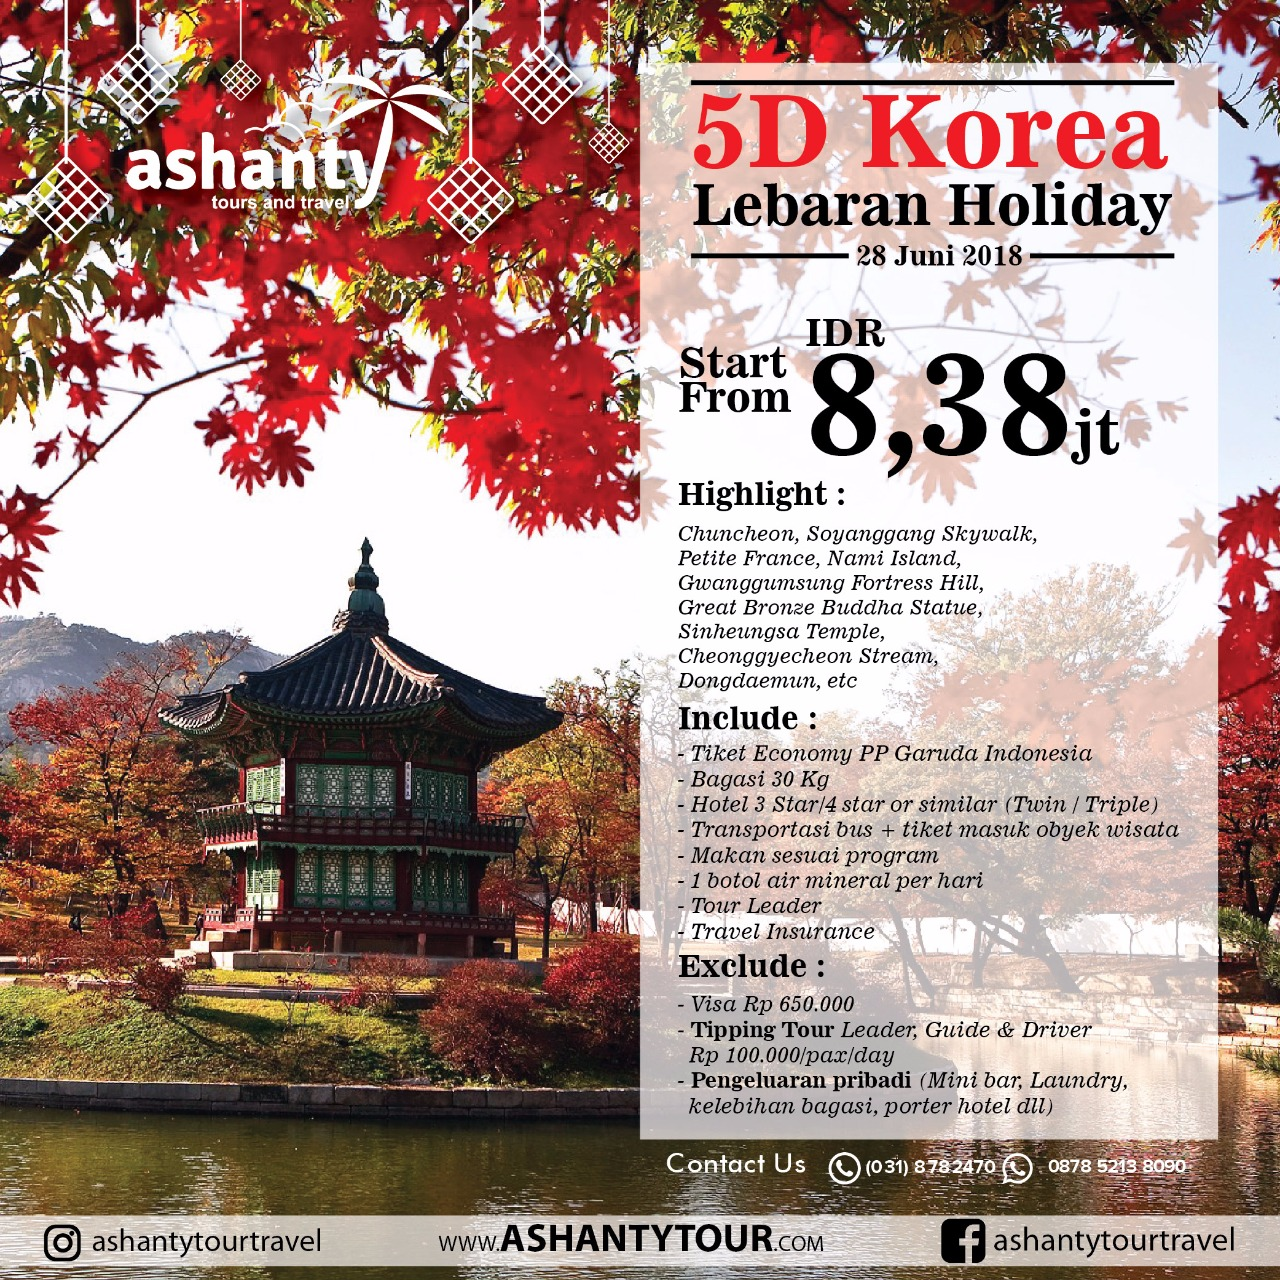 Korea 5D - Lebaran Holiday Tour 2018